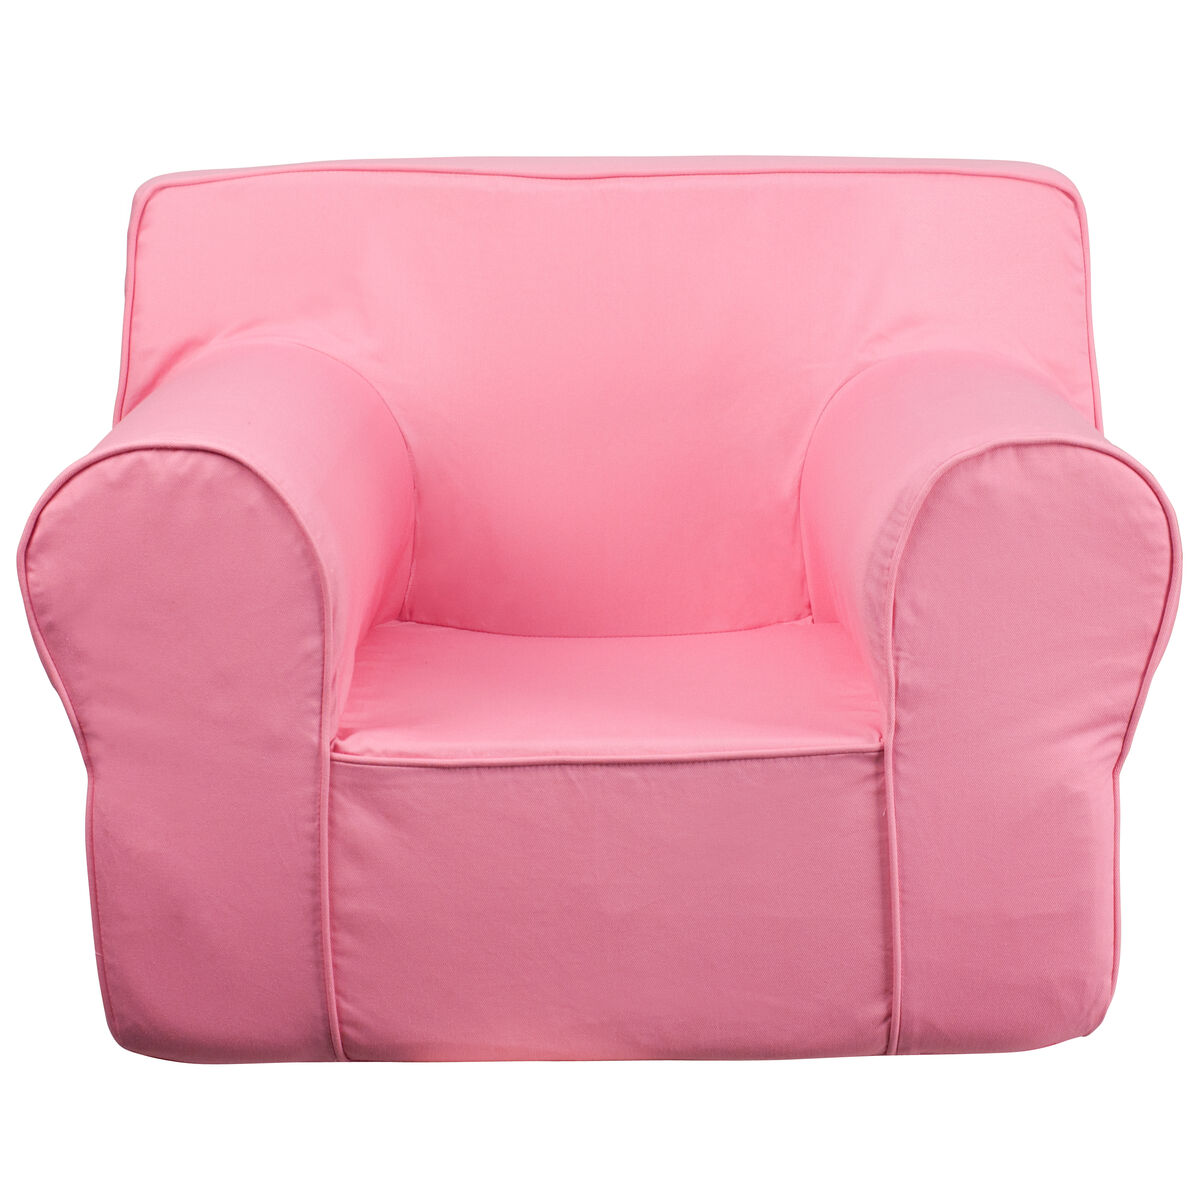 Flash furniture oversized solid light pink kids chair dg for Oversized kids chair